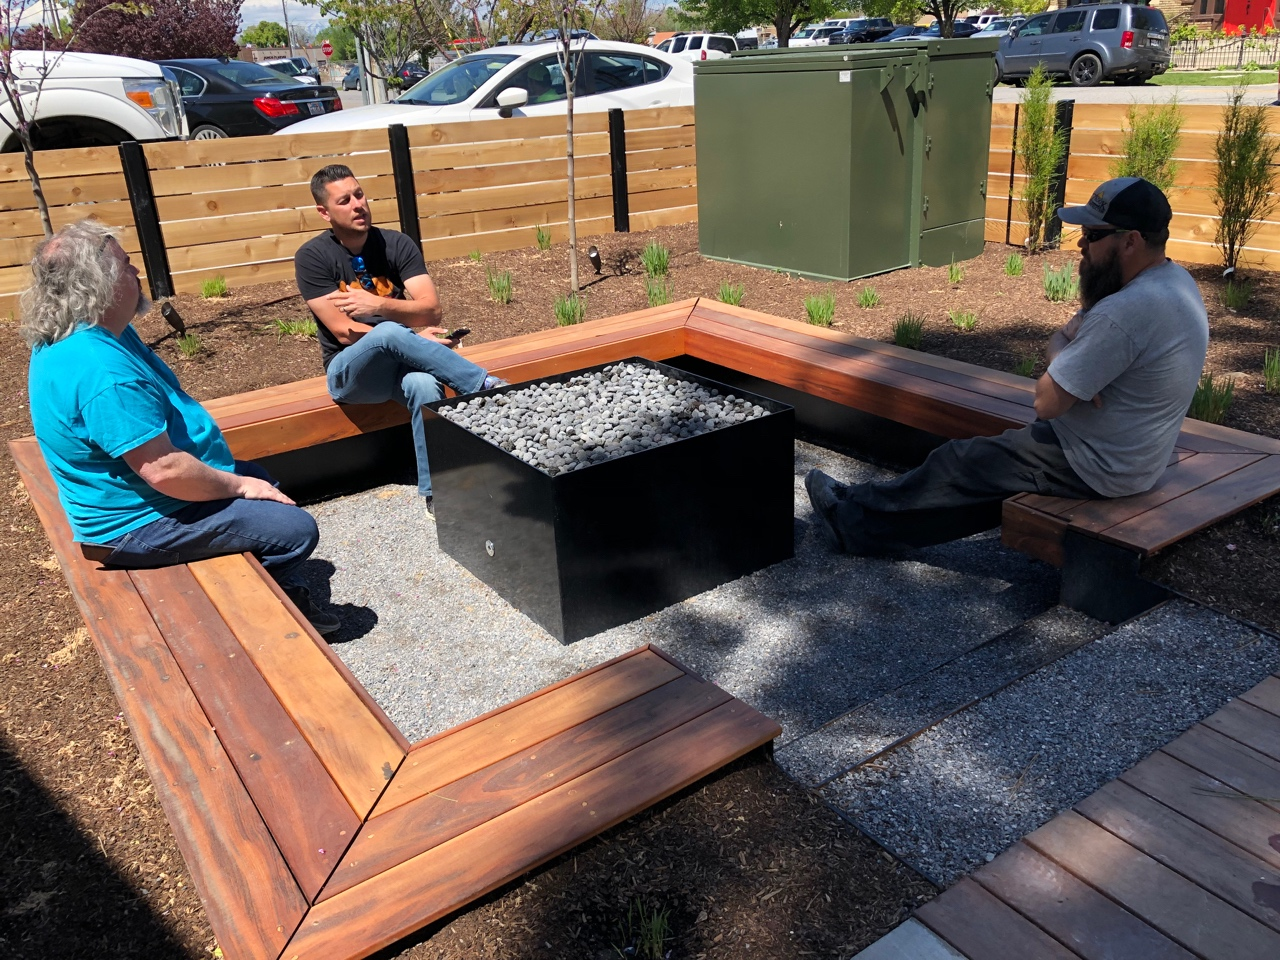 The fire pit area has been a great place for gathering and talking.  Here Tony, Nick (contractor) and Jared (superintendent) plan the next few weeks and what needs to be completed before Tony's final trip.